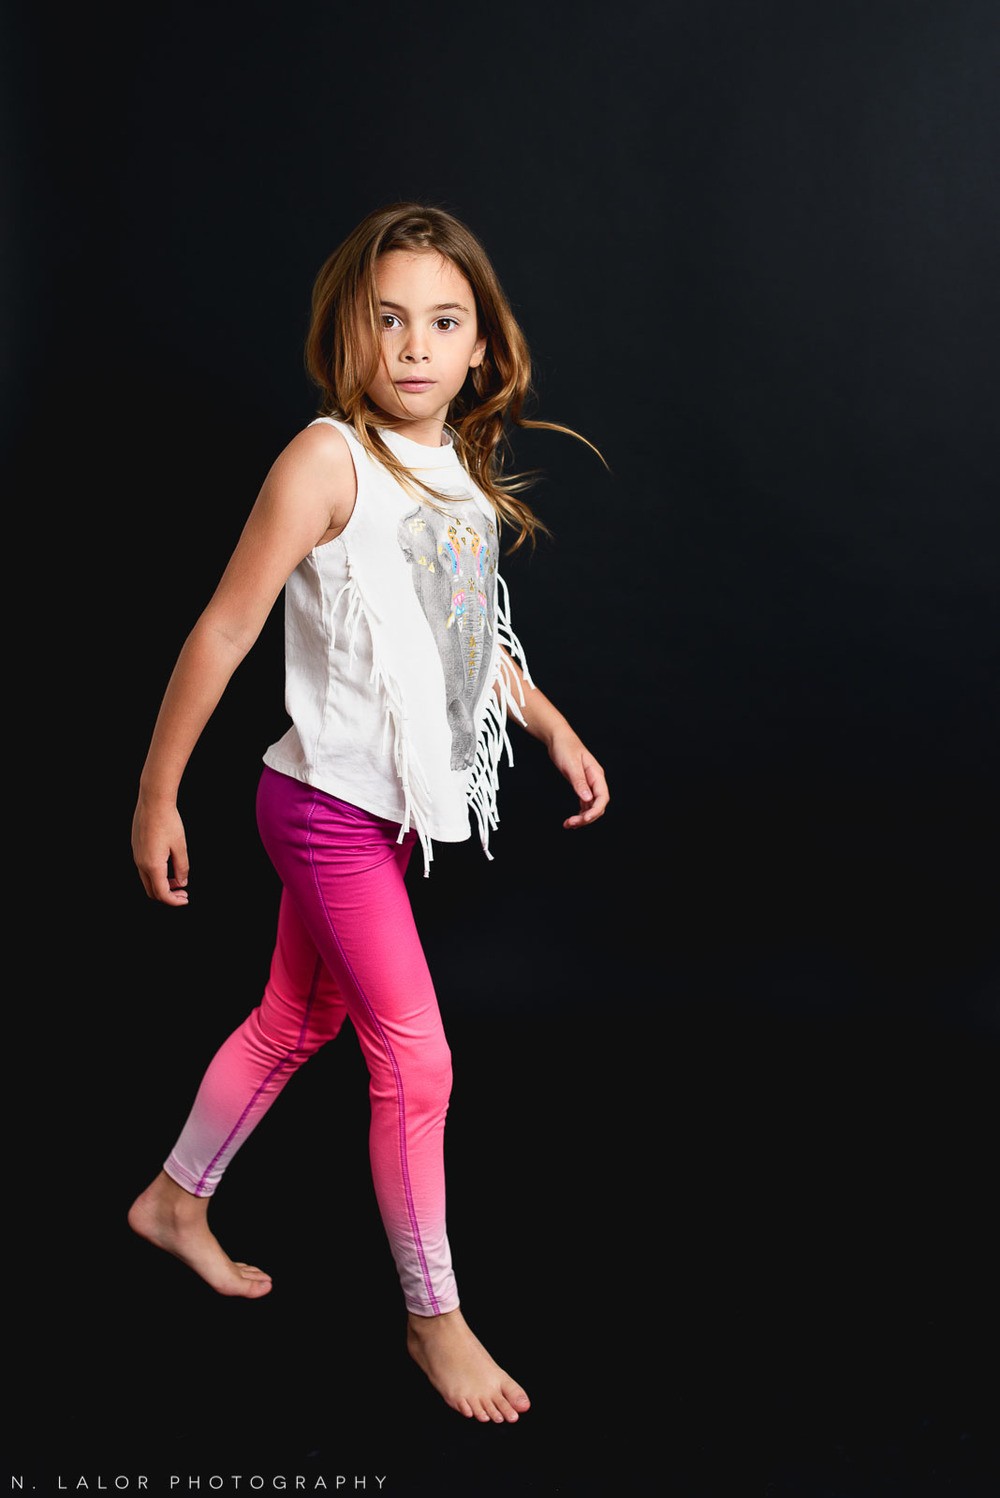 Walking the walk.. Editorial studio portrait of 6-year old girl by N. Lalor Photography in Greenwich, Connecticut.